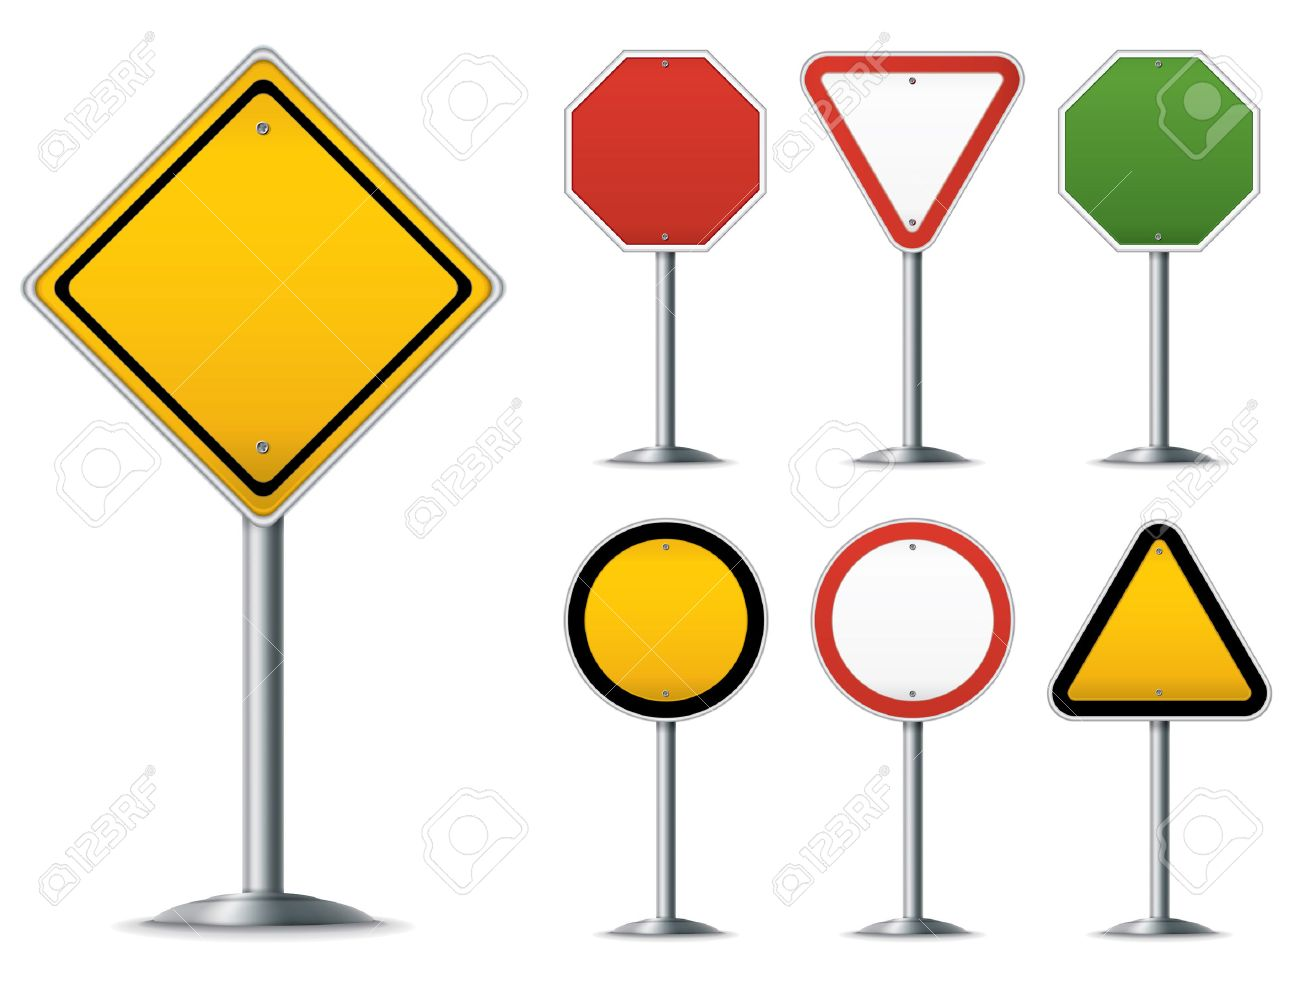 Blank traffic sign set. Easy to edit vector image. Stock Vector - 5582725